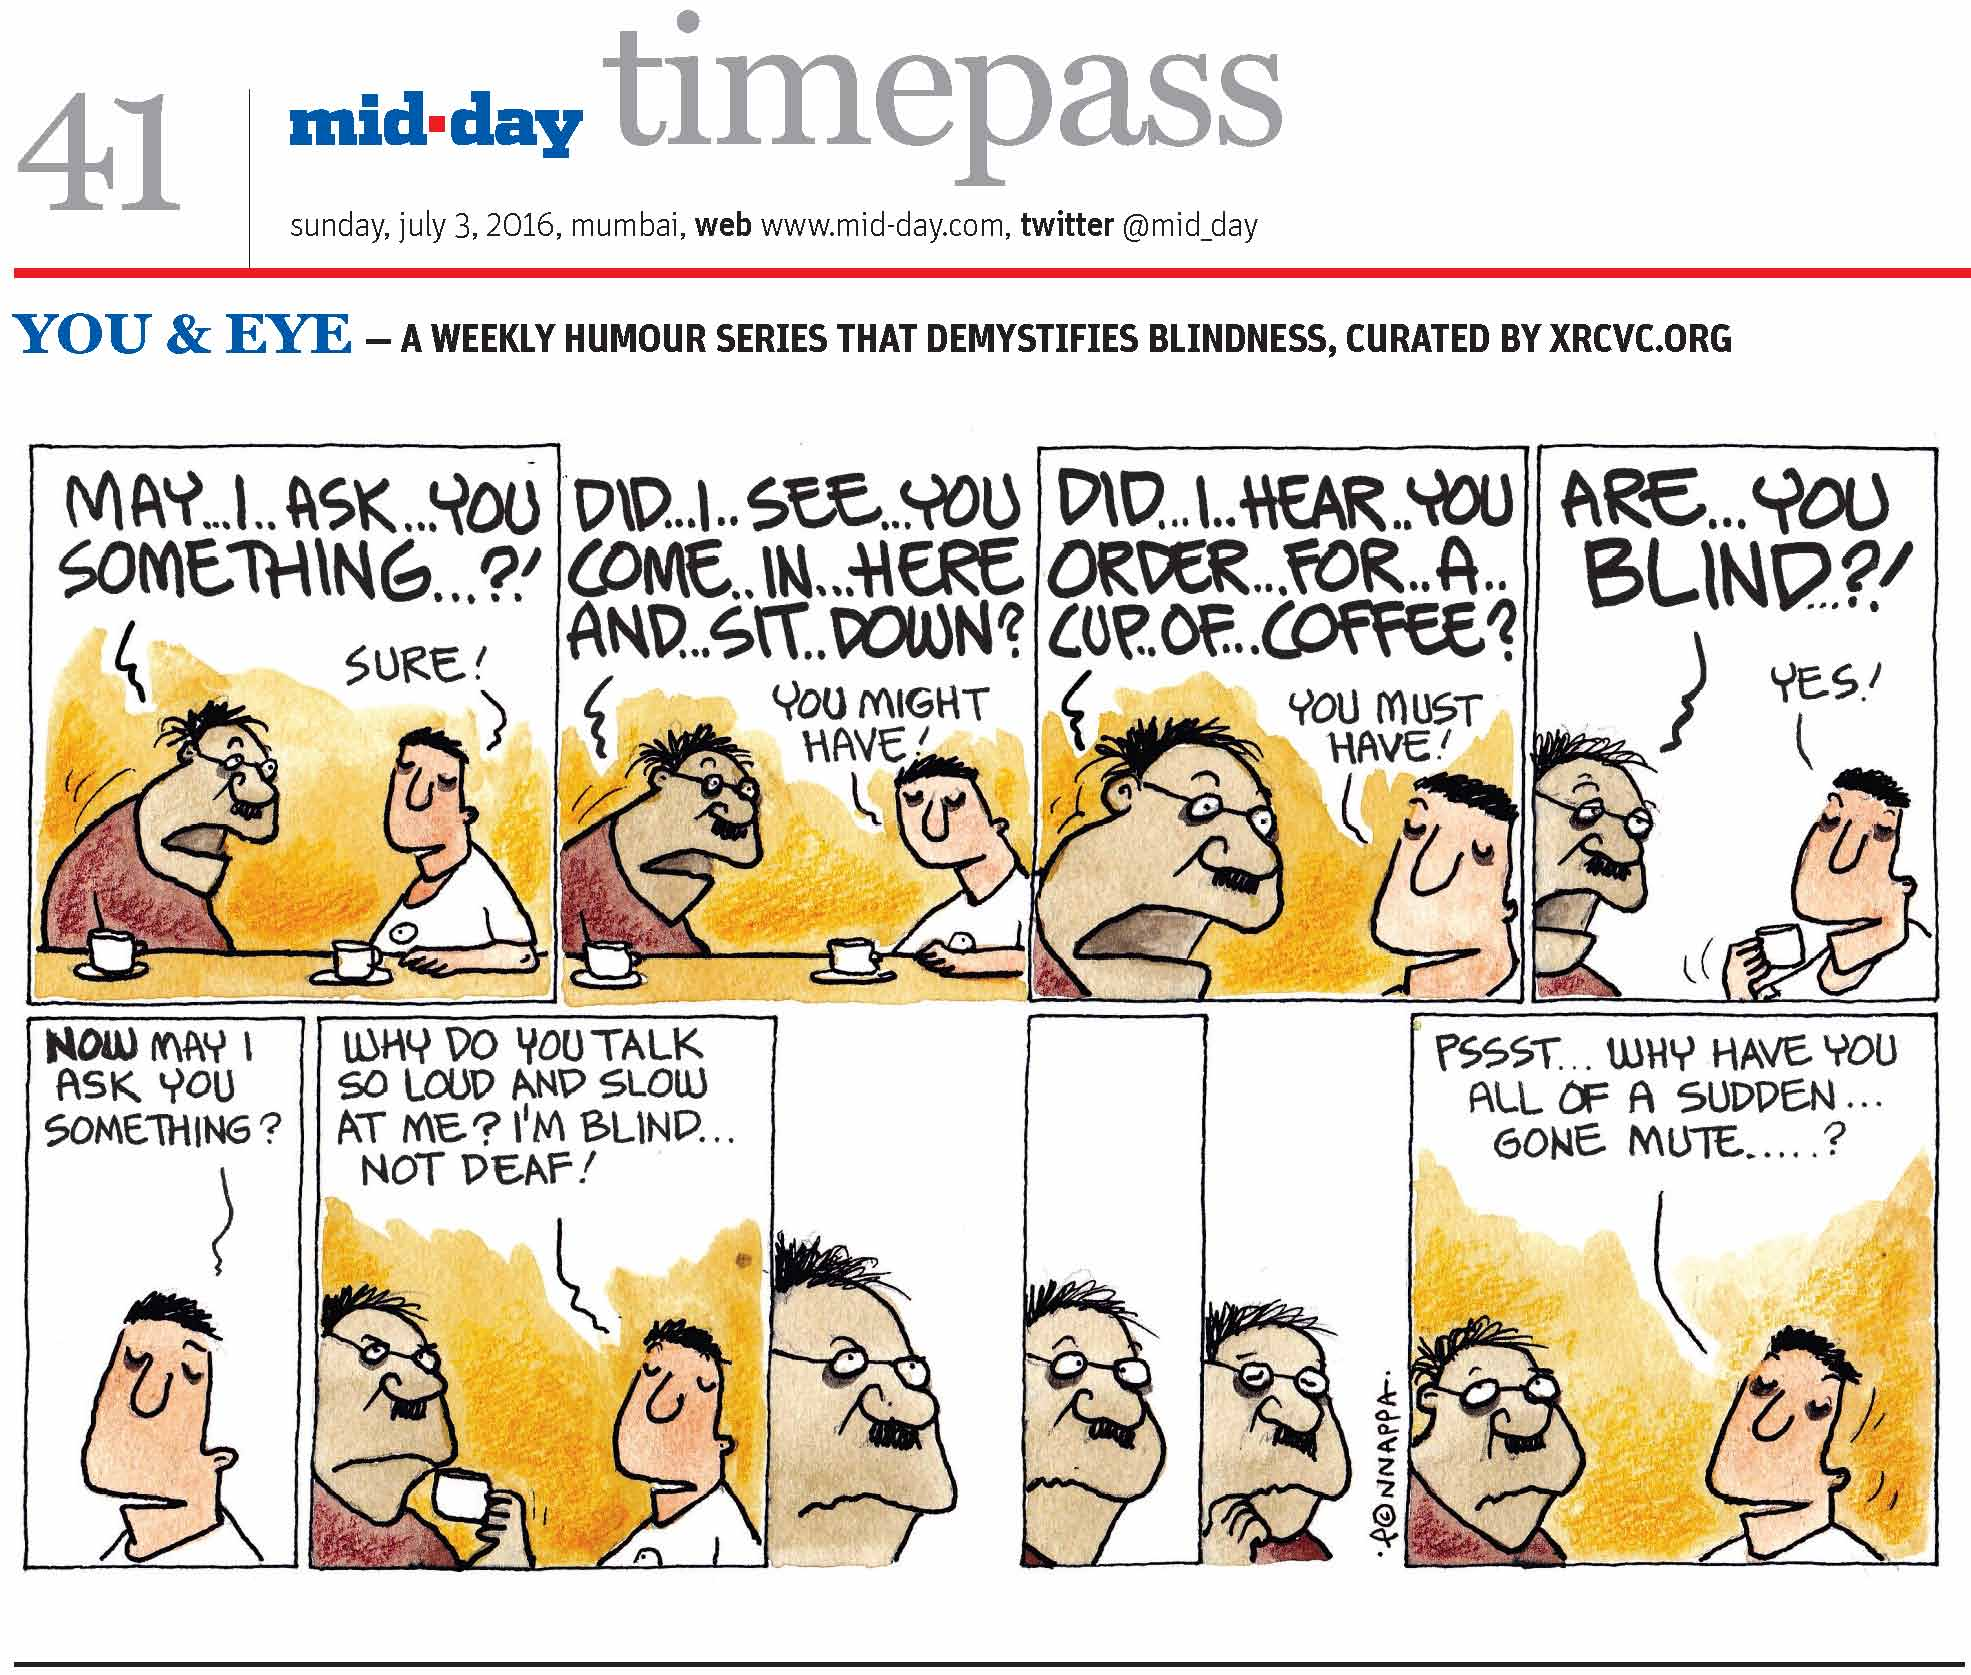 Page 41 mid-day timepass, sunday, july 3, 2016, mumbai, web: www.mid-day.com, twitter @mid_day, YOU & EYE – A WEEKLY HUMOUR SERIES THAT DEMYSTIFIES BLINDNESS, CURATED BY XRCVC.ORG Image description: A cartoon strip with 10 frames… All that is spoken by the man with spectacles is shown bigger and bolder than regular-sized text. Frame 1: (A man with spectacles sitting next to the visually impaired man – BG. They both have a cup and saucer each, on the table in front of them.) Man with specs: May… I… ask… you… something…?! BG: Sure! Frame 2: (Both men continue talking.) Man with specs: Did… I… see… you… come… in… here… and… sit… down? BG: You might have! Frame 3: (A close-up of both men as they continue talking) Man with specs: Did… I… hear… you… order… for… a… cup… of… coffee? BG: You must have! Frame 4: (A close-up of both men as they continue talking) Man with specs: Are… you… blind?! BG: Yes! Frame 5: (A close-up of BG) BG: Now, may I ask you something? Frame 6: (The man with spectacles holding his cup close to his mouth as BG speaks) BG: Why do you talk so loud and slow at me? I'm blind… not deaf! Frame 7: (The man with spectacles appears to be speculating) Frame 8: (The man with spectacles continues to wonder with eyebrows raised) Frame 9: (The man with spectacles continues to contemplate with eyes shut and his right hand to the right side of his mouth) Frame 10: (A close-up of both men) BG: Pssst… Why have you all of a sudden… gone mute...? (Signed Ponnappa, in Frame 9)